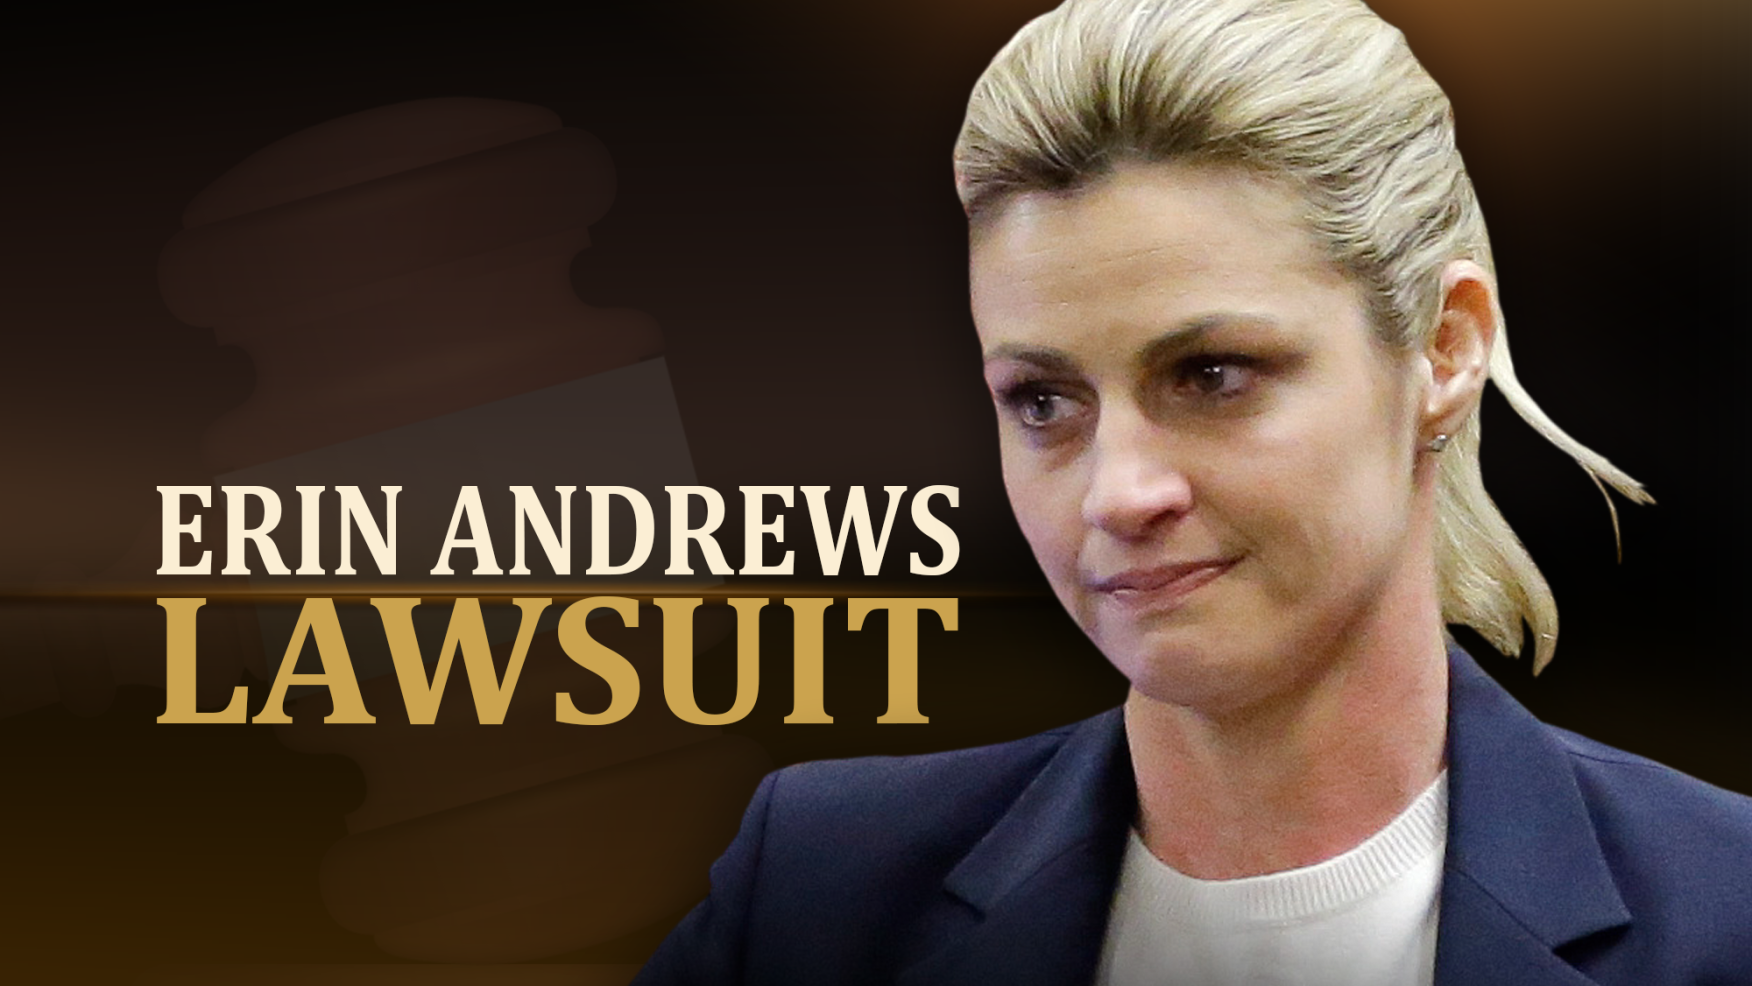 Erin Andrews awarded $55 million in nude video suit | FOX